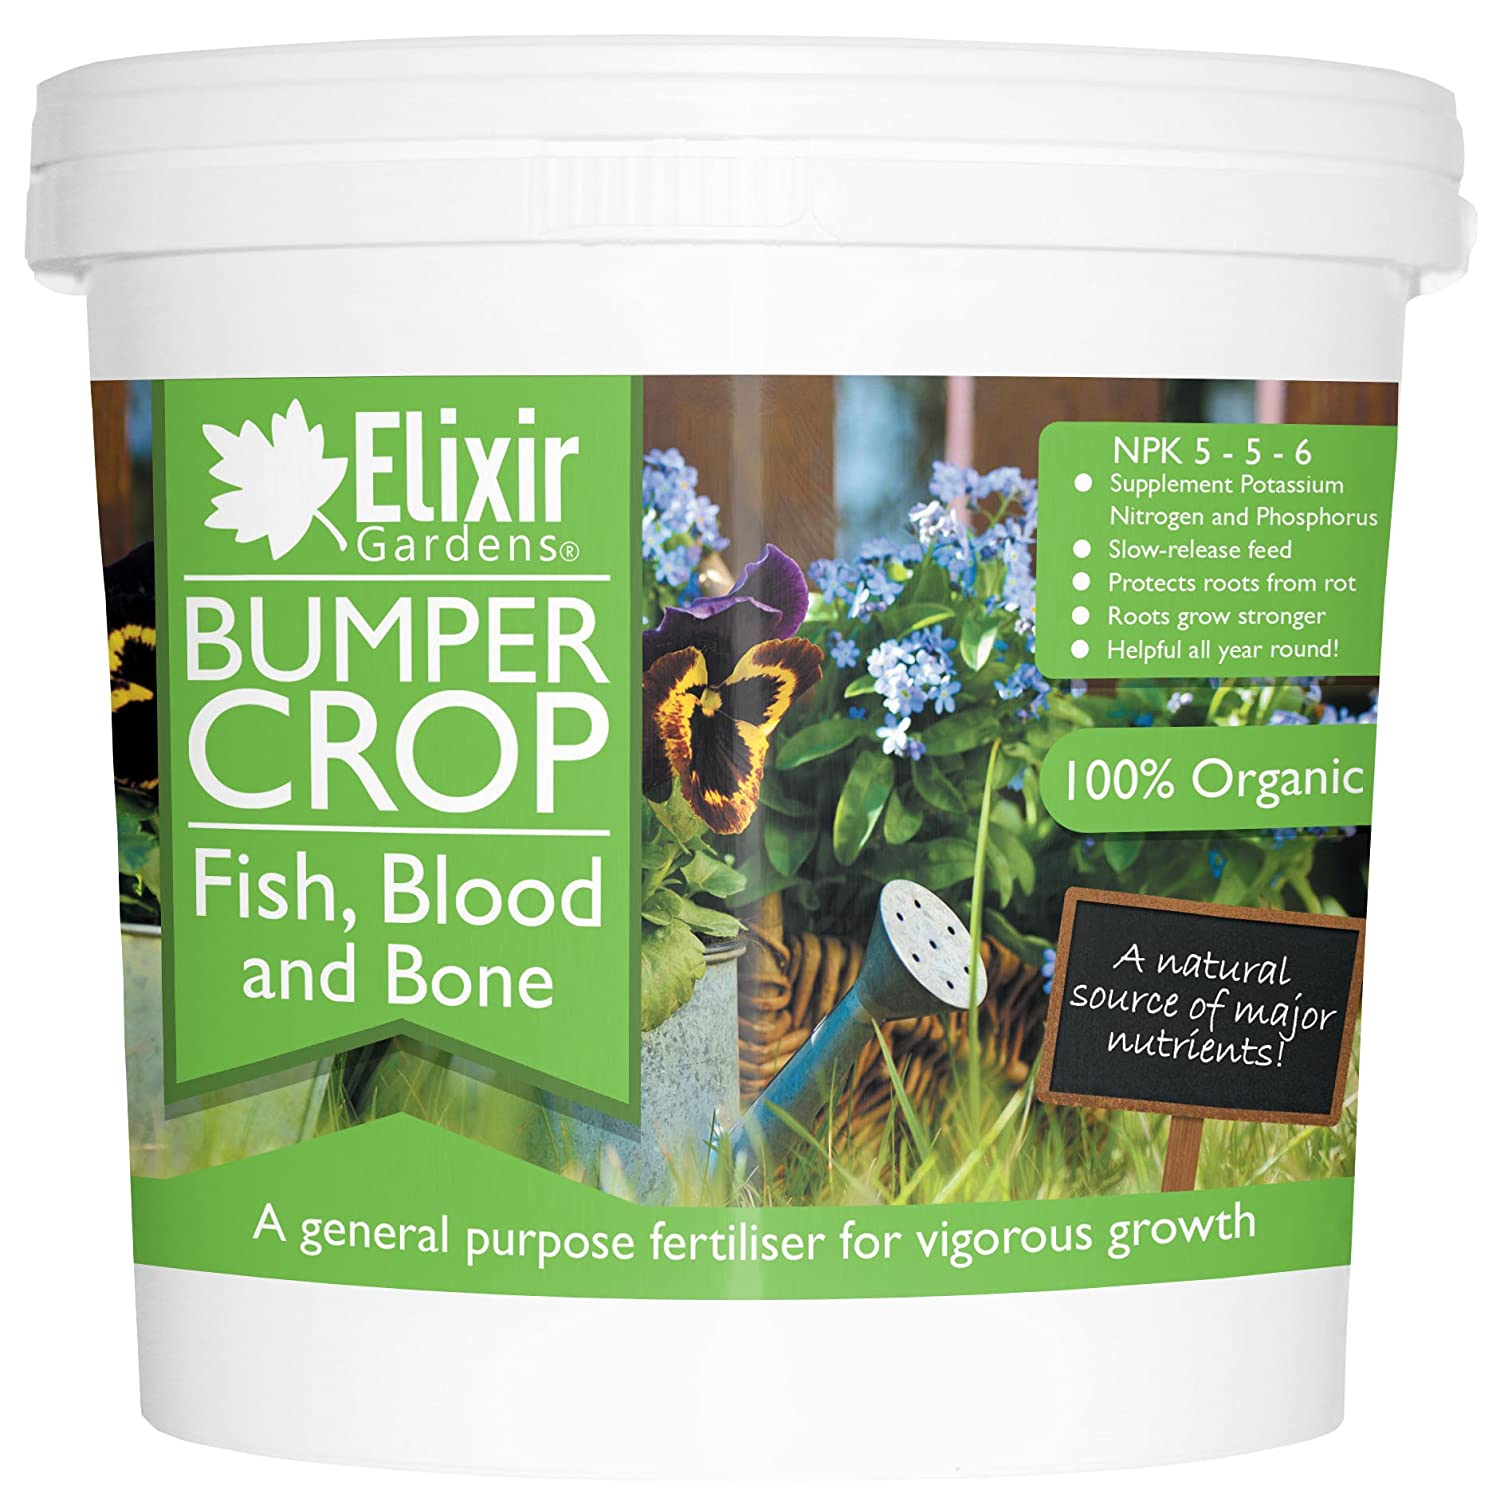 Bumper Crop Blood Fish Bone Fertiliser | 1kg, Re-Sealable Tub by Elixir Gardens ®